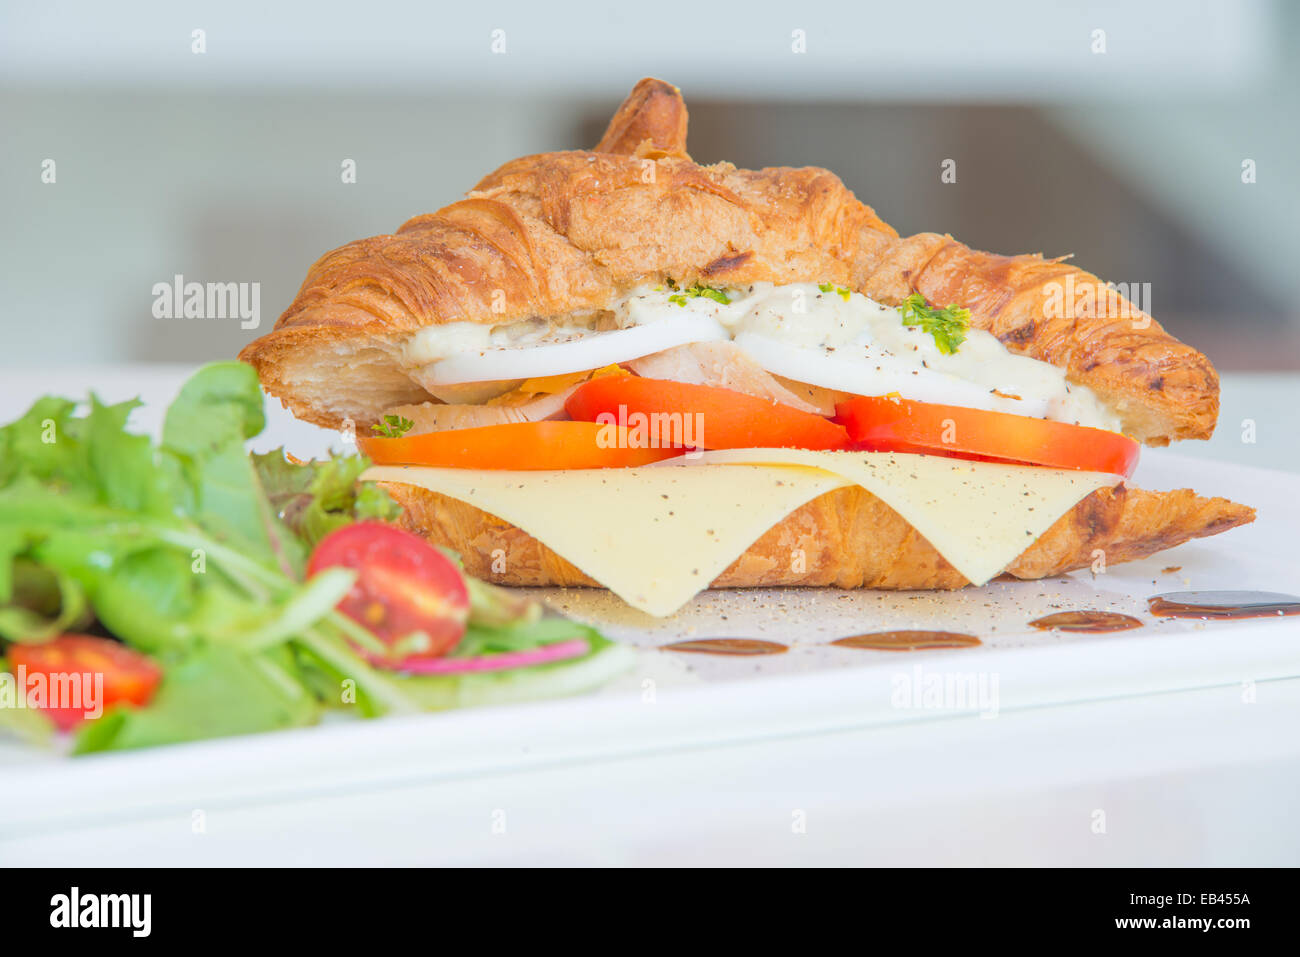 Croissant with cheese tomato chicken and salad - Stock Image